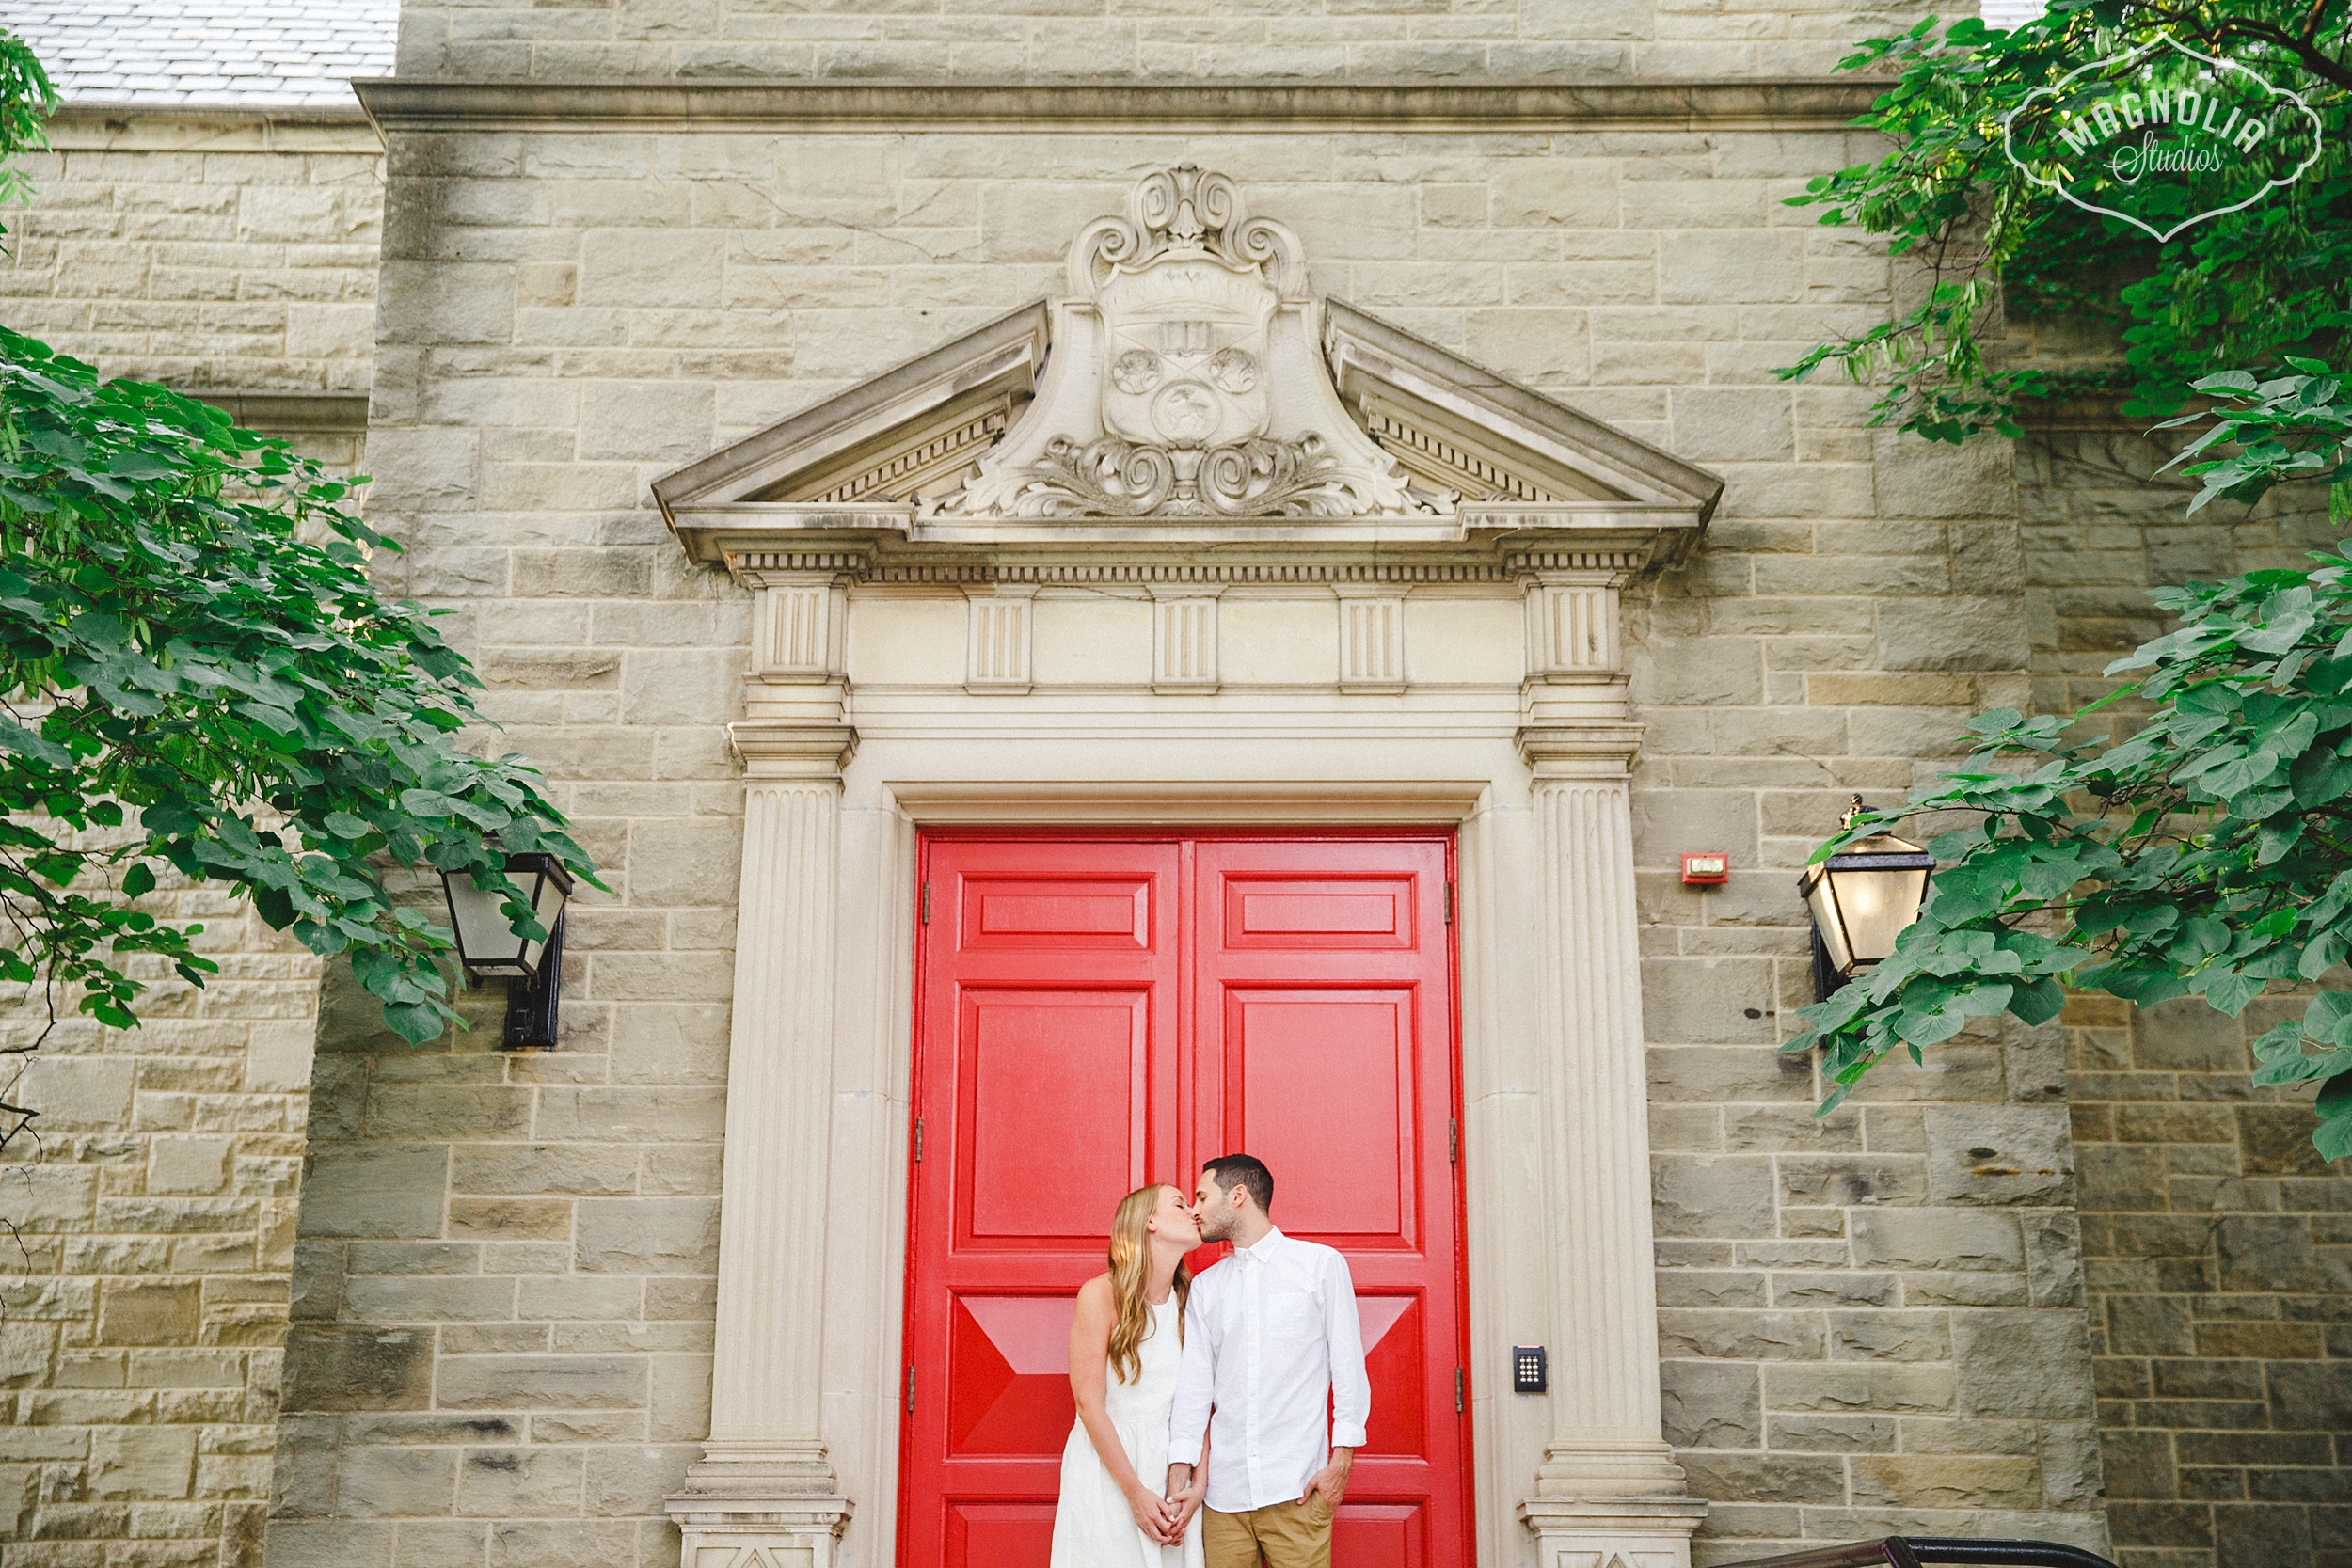 Western_University_Engagement_Shoot_Magnolia_Studios-1